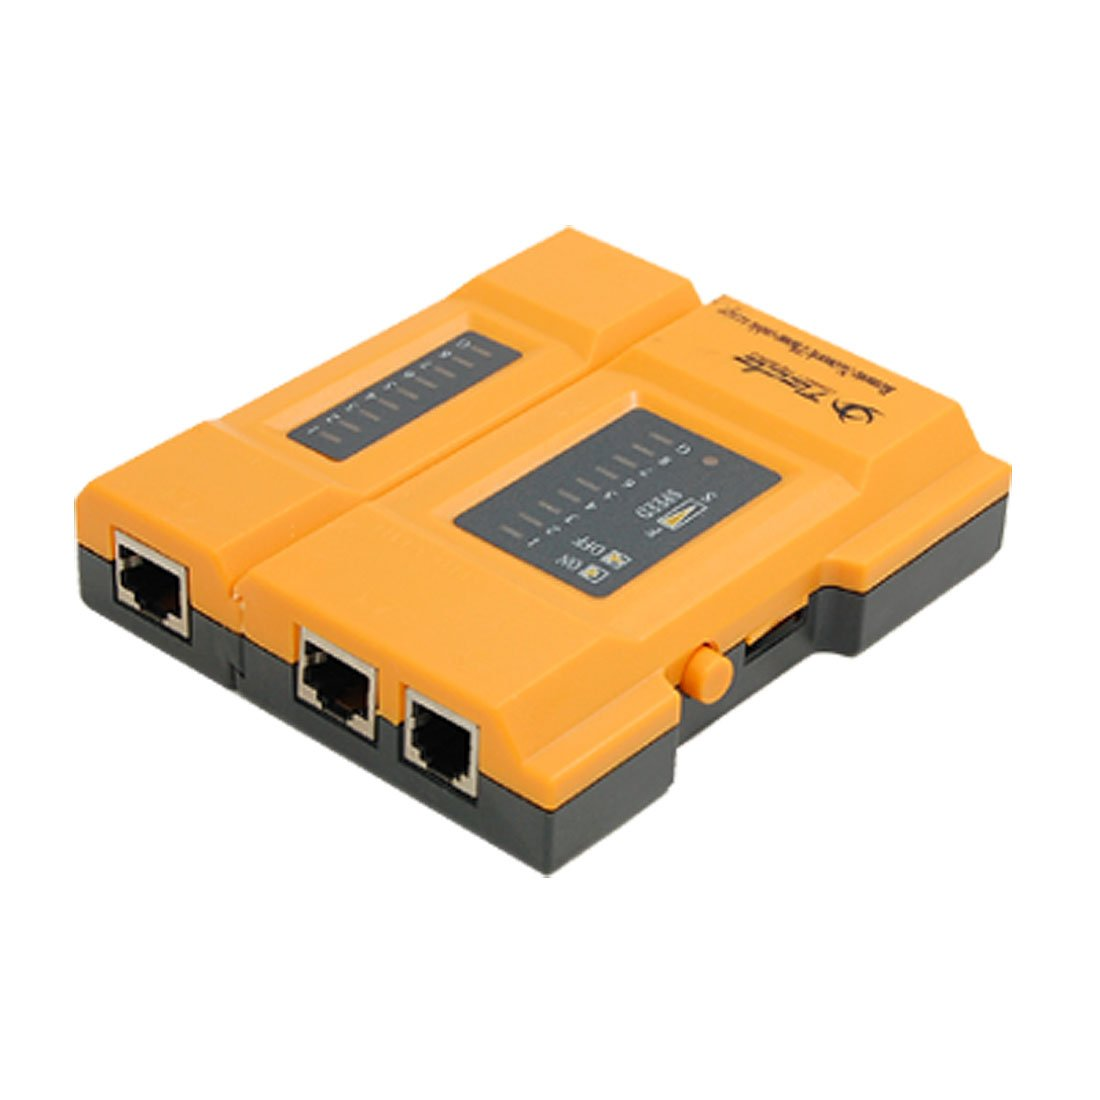 CAA-Hot Sale Professional RJ11 RJ45 LAN Network Phone Cable Tester(China (Mainland))